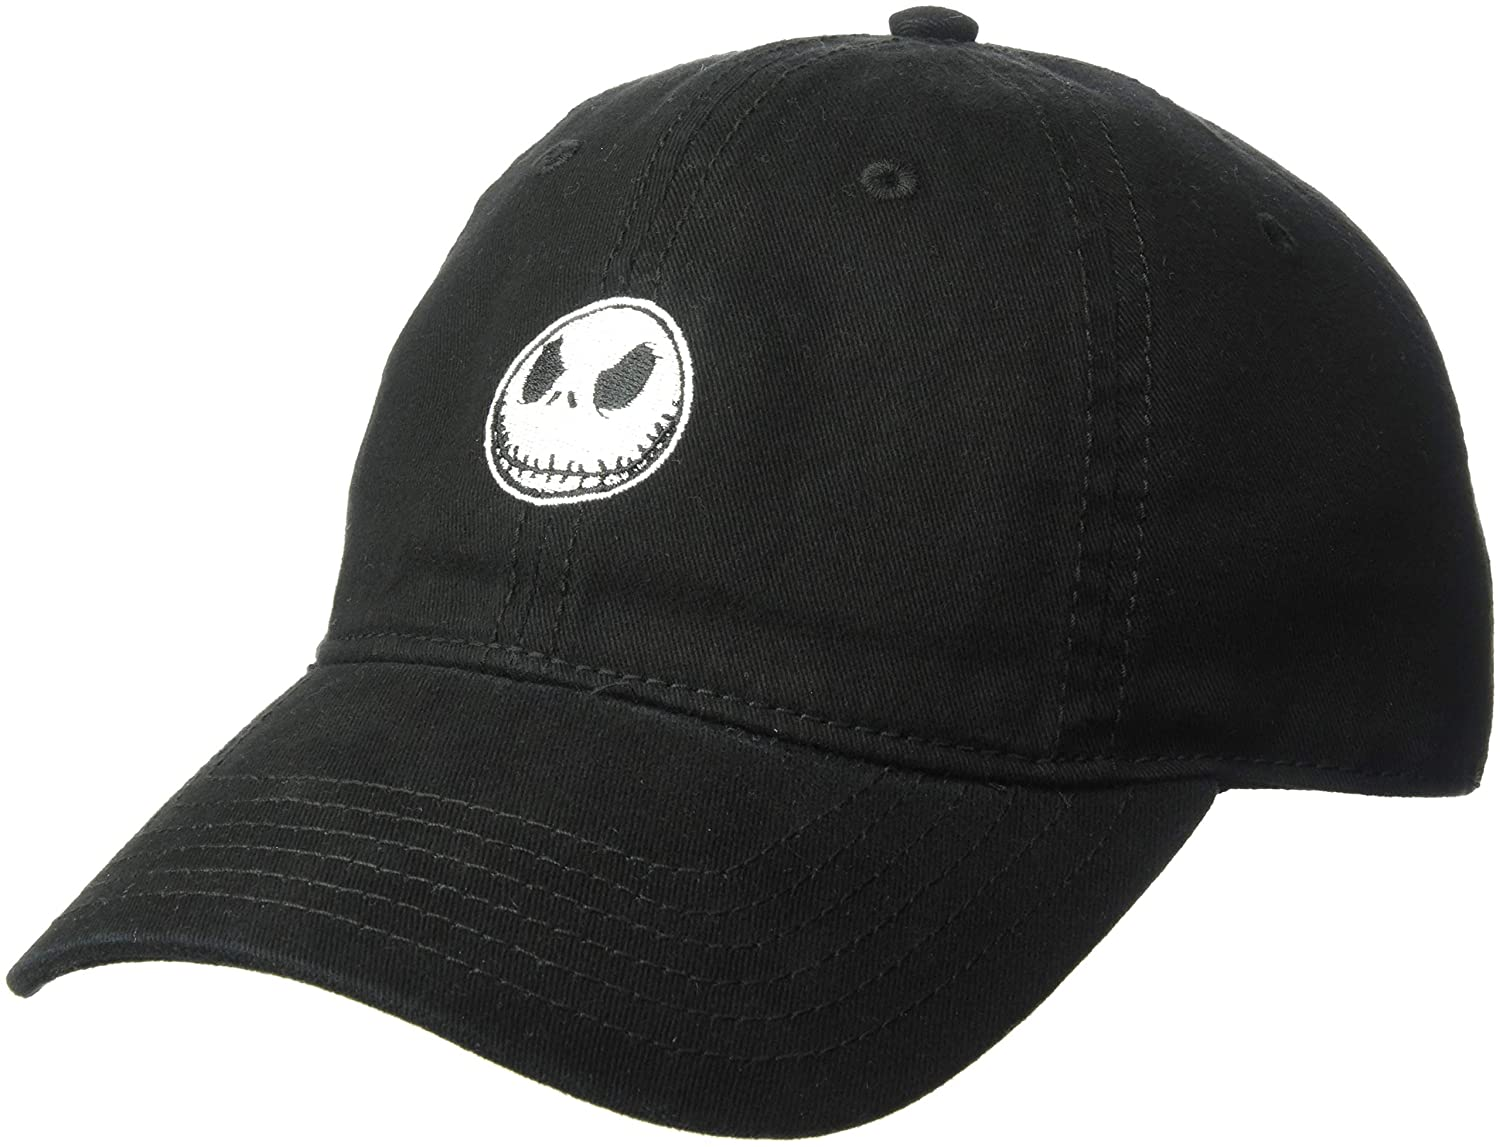 e519a89199e35 Nightmare Before Christmas Jack Skellington Baseball Cap at Amazon Men s  Clothing store